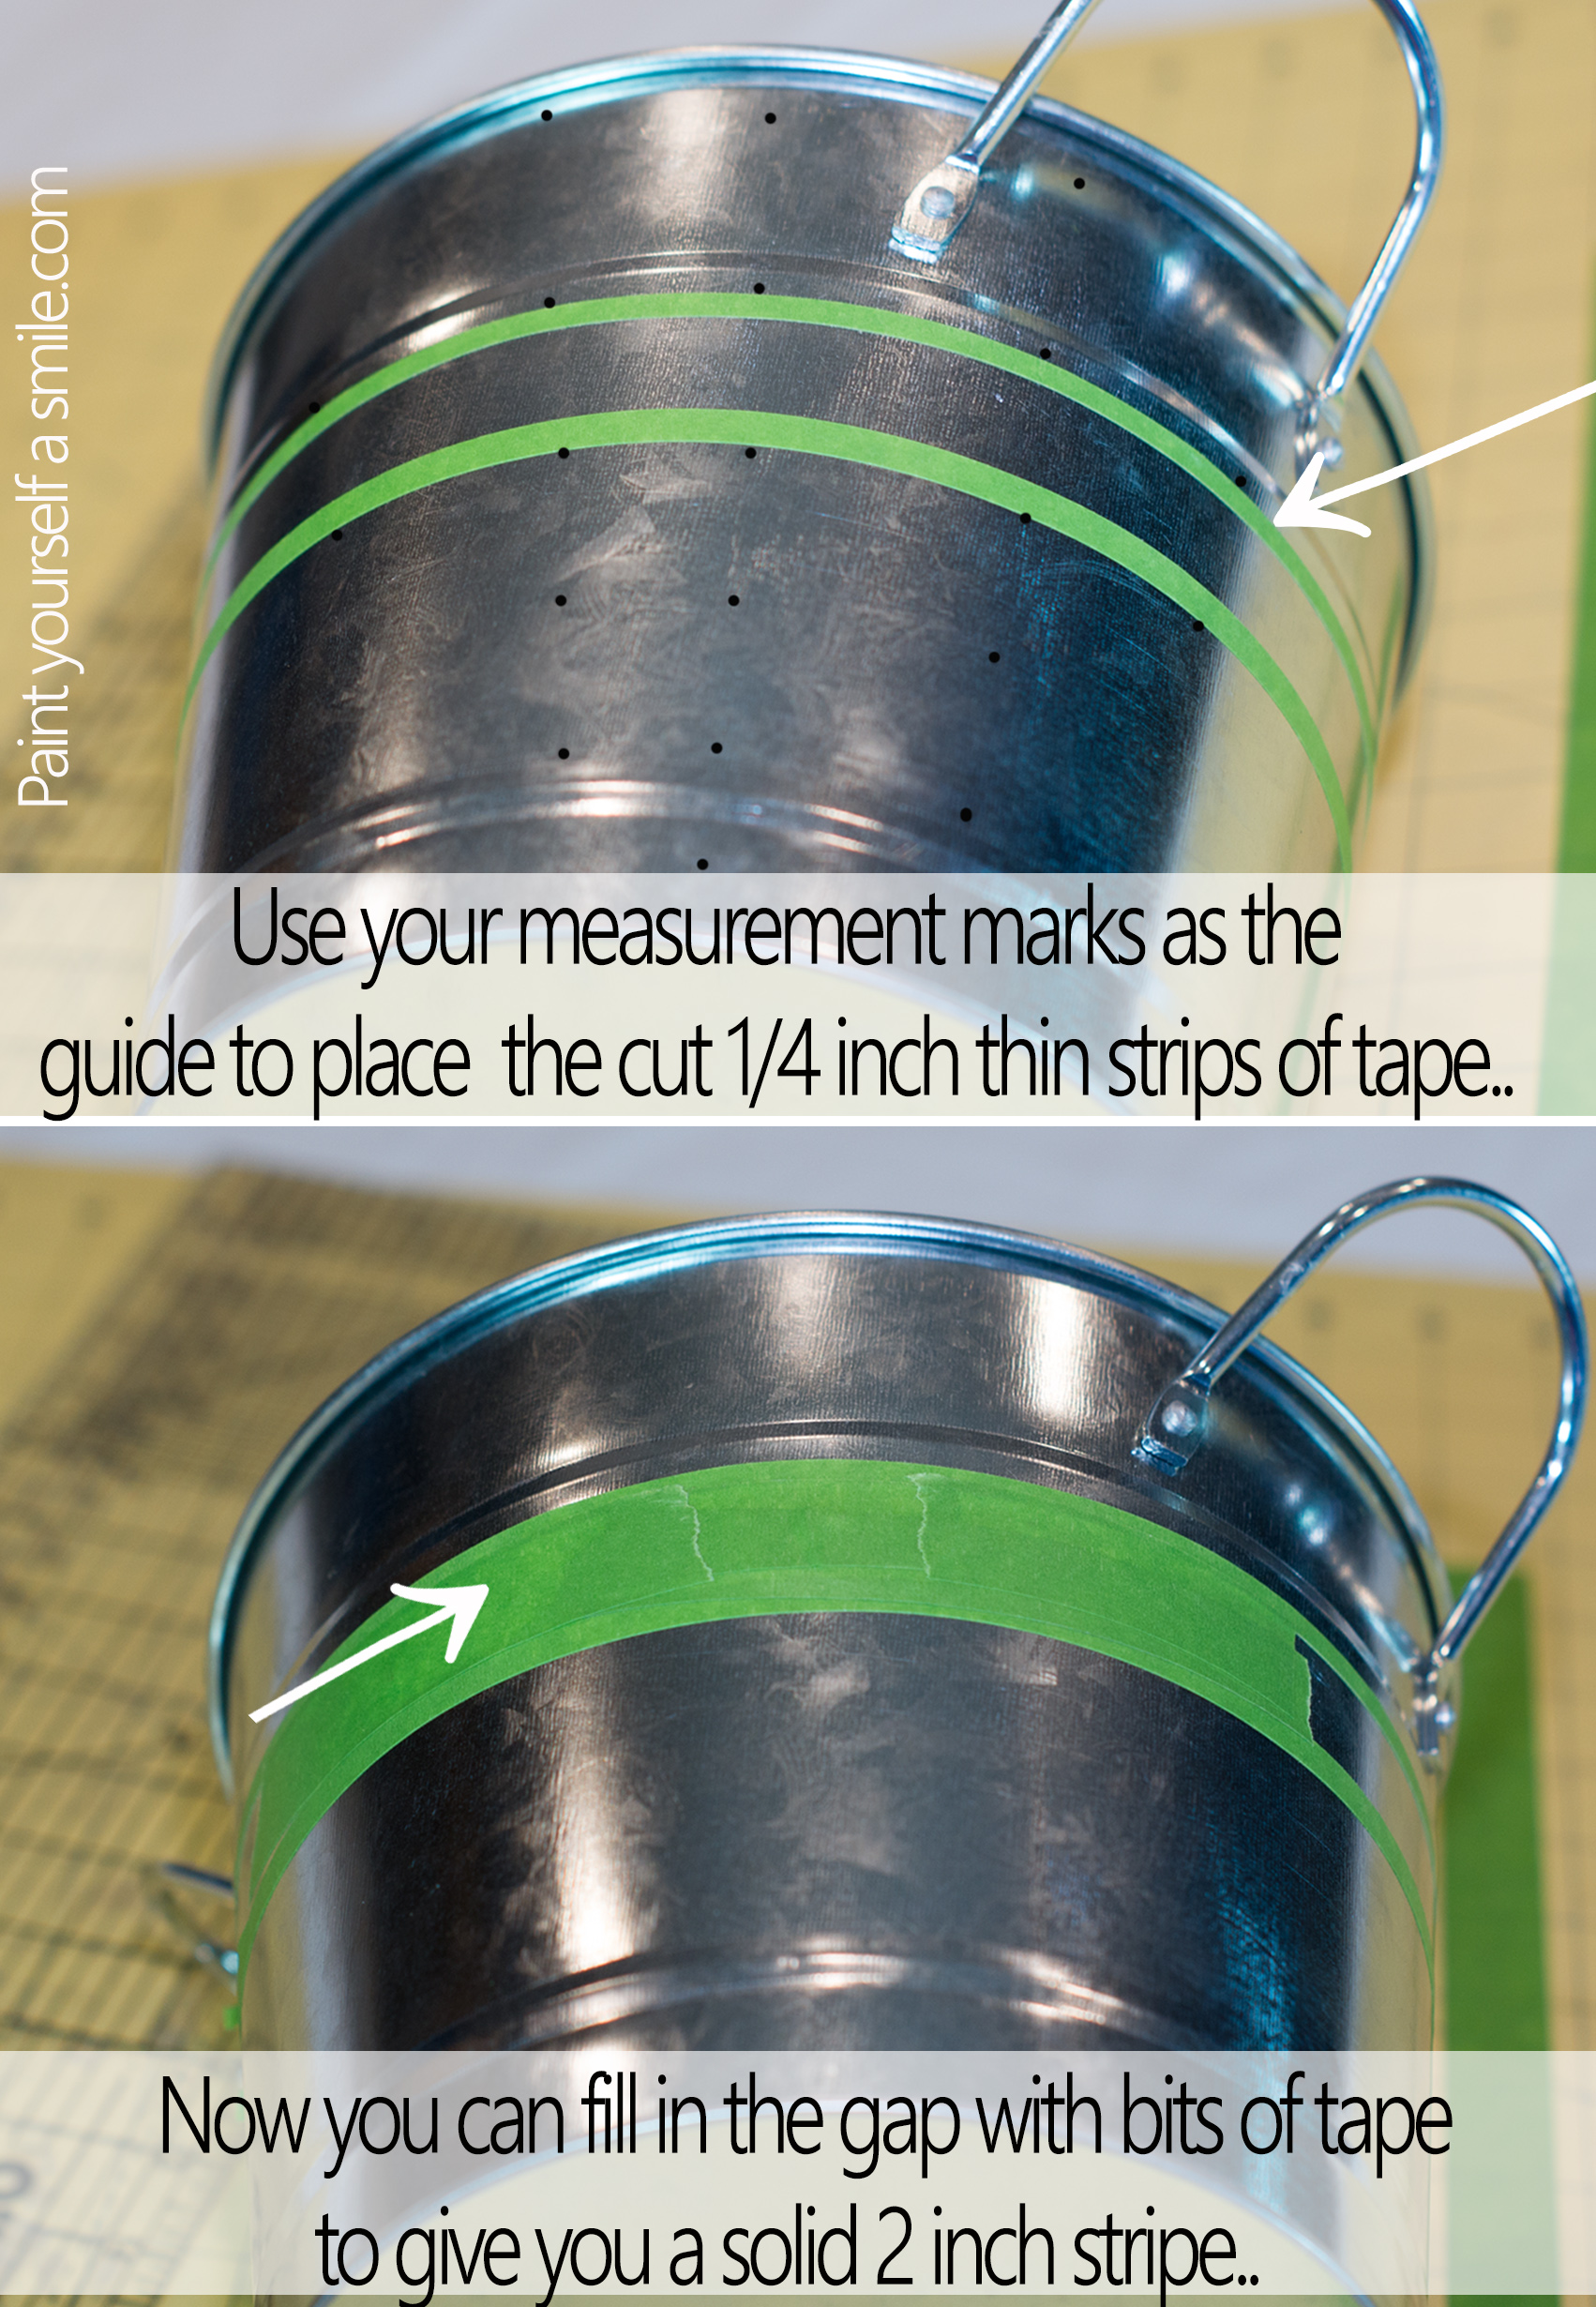 How to tape a straight line on a curved surface